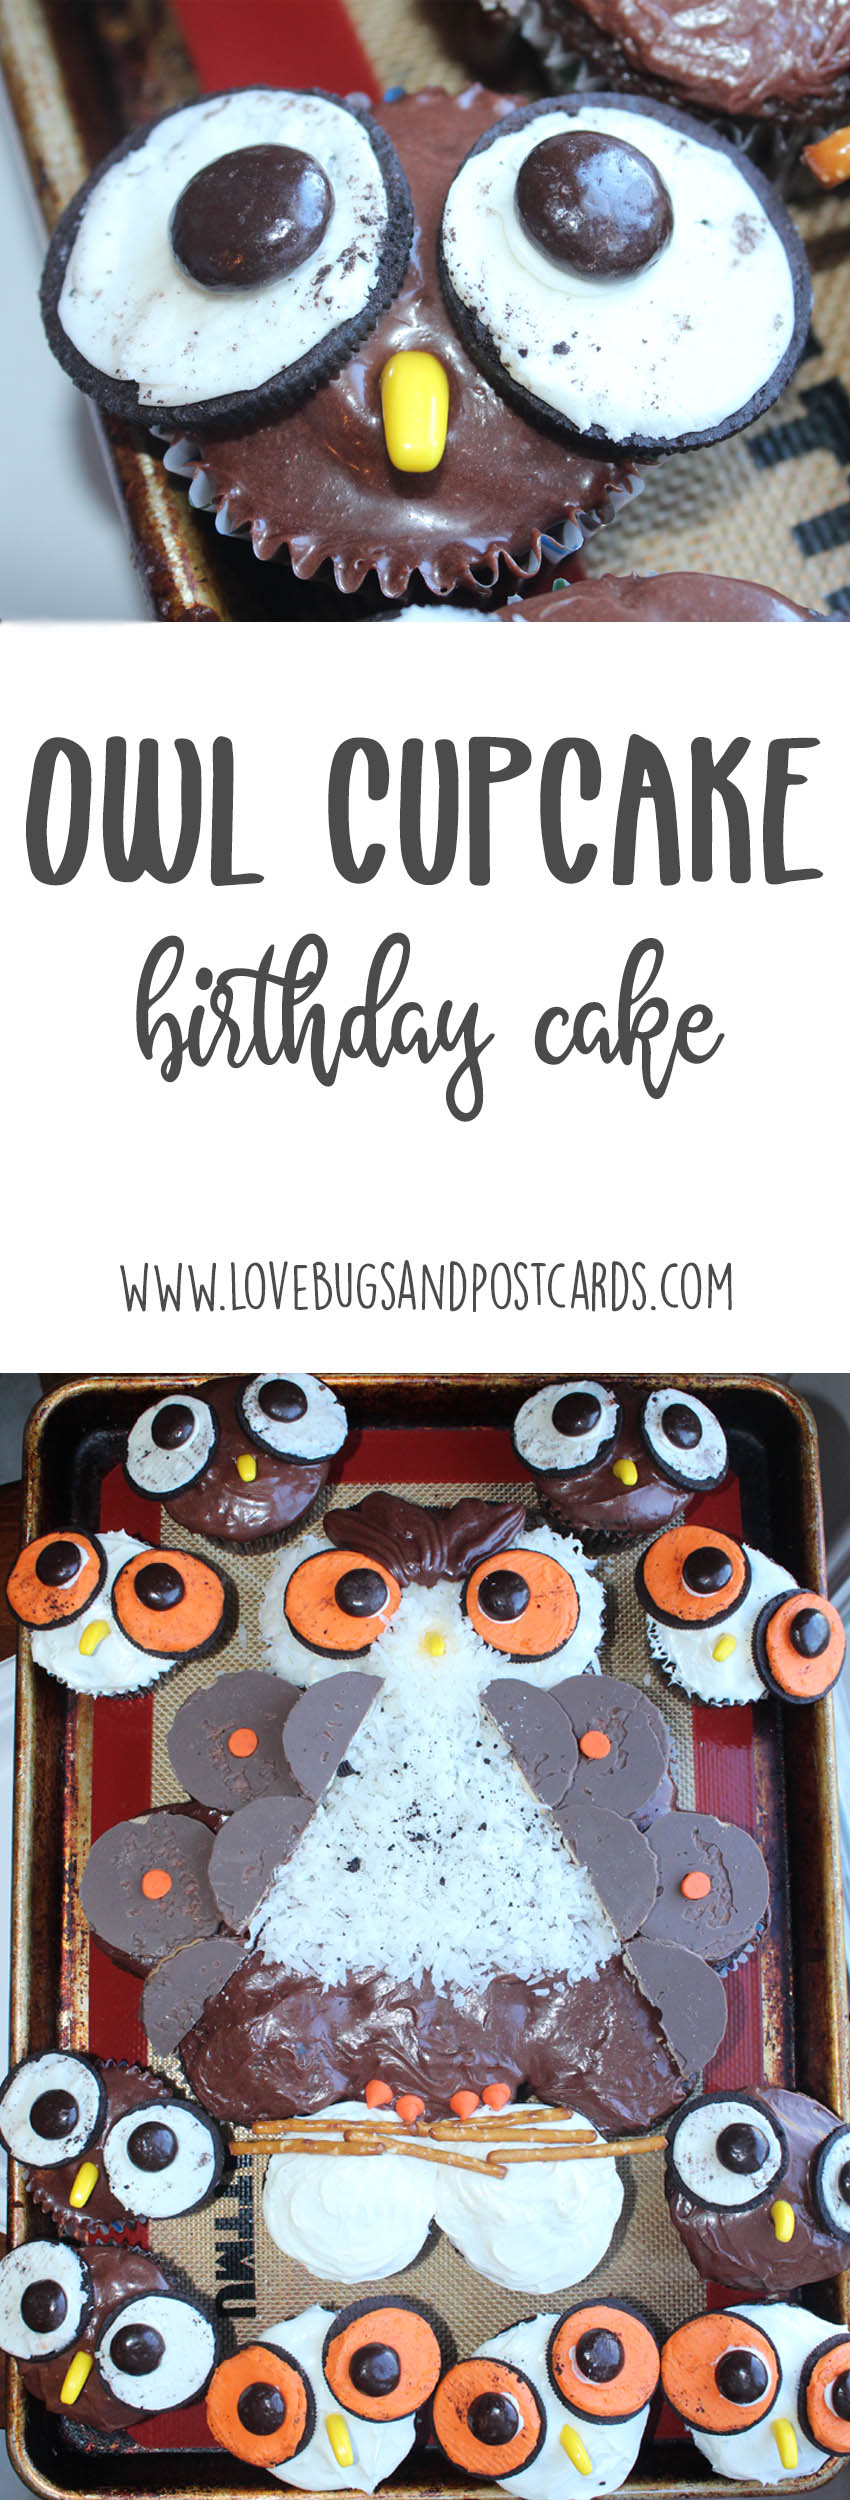 Owl Cupcake Cake and Baby Owl Cupcakes